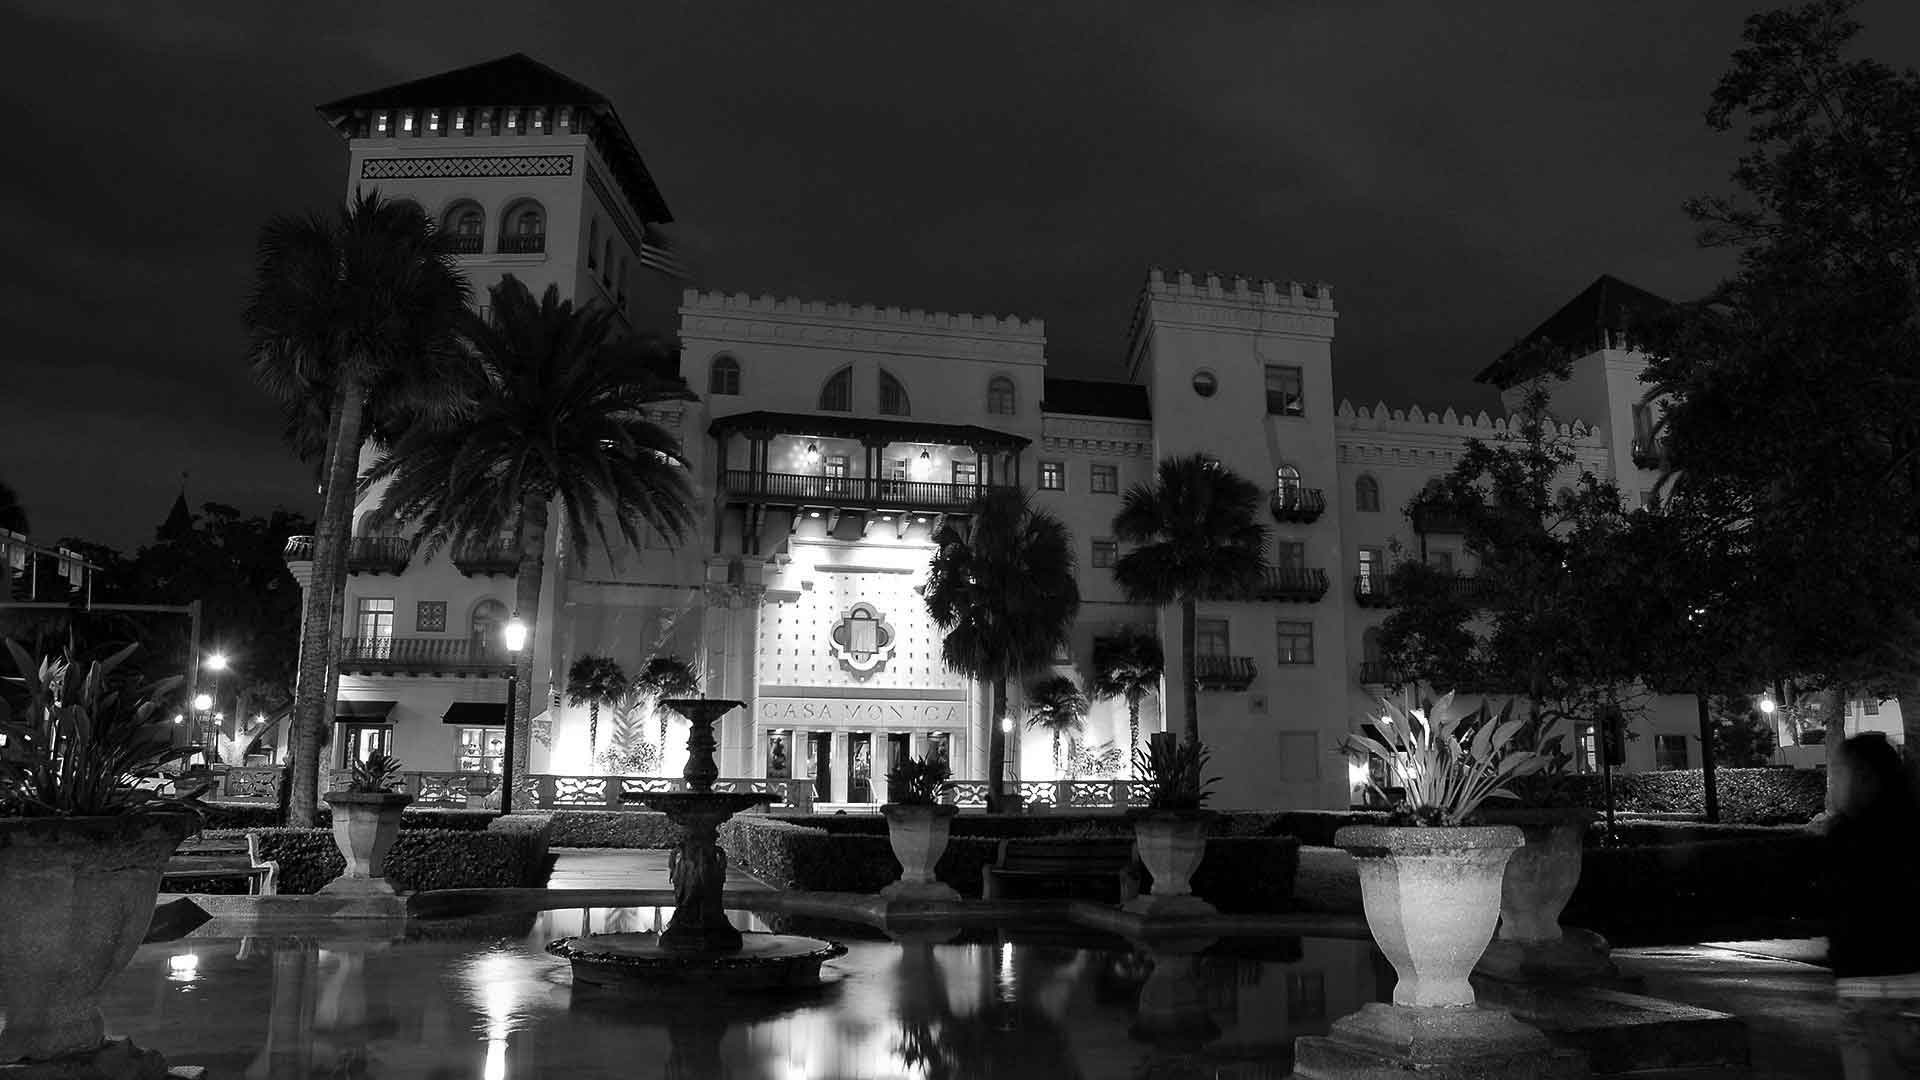 casa monica hotel st augustine black and white photo